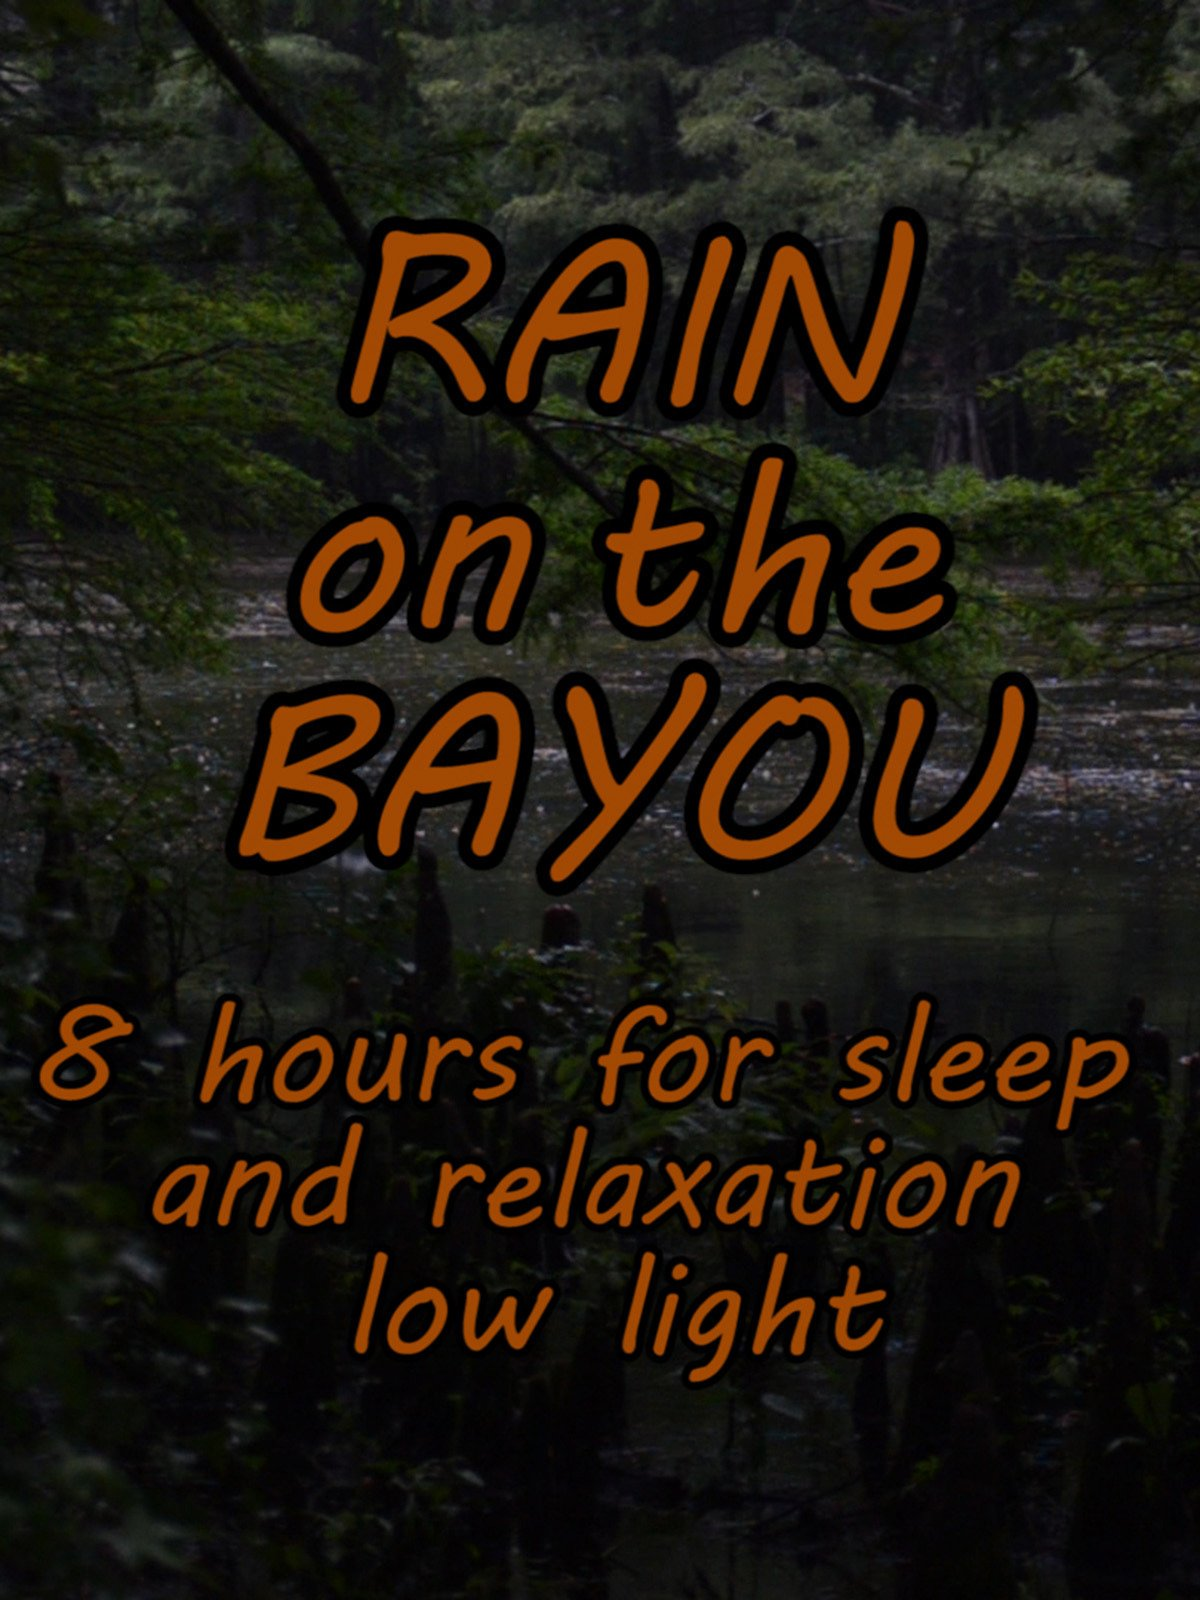 Rain On The Bayou 8 hours for sleep and relaxation low light